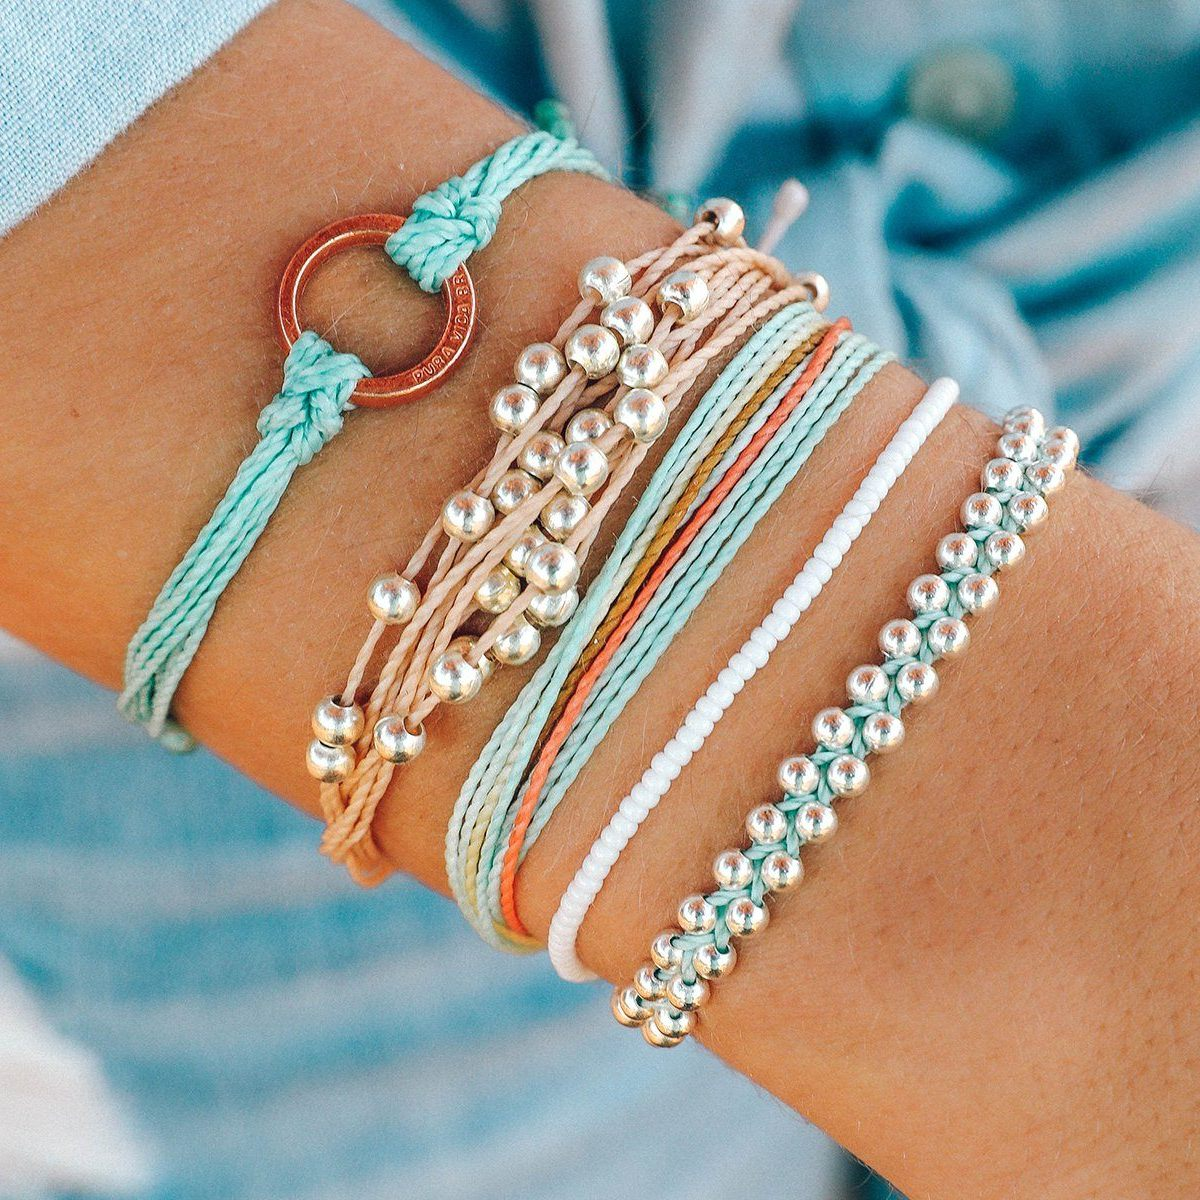 Pura Vida Bracelets Pura Vida Monthly Subscription